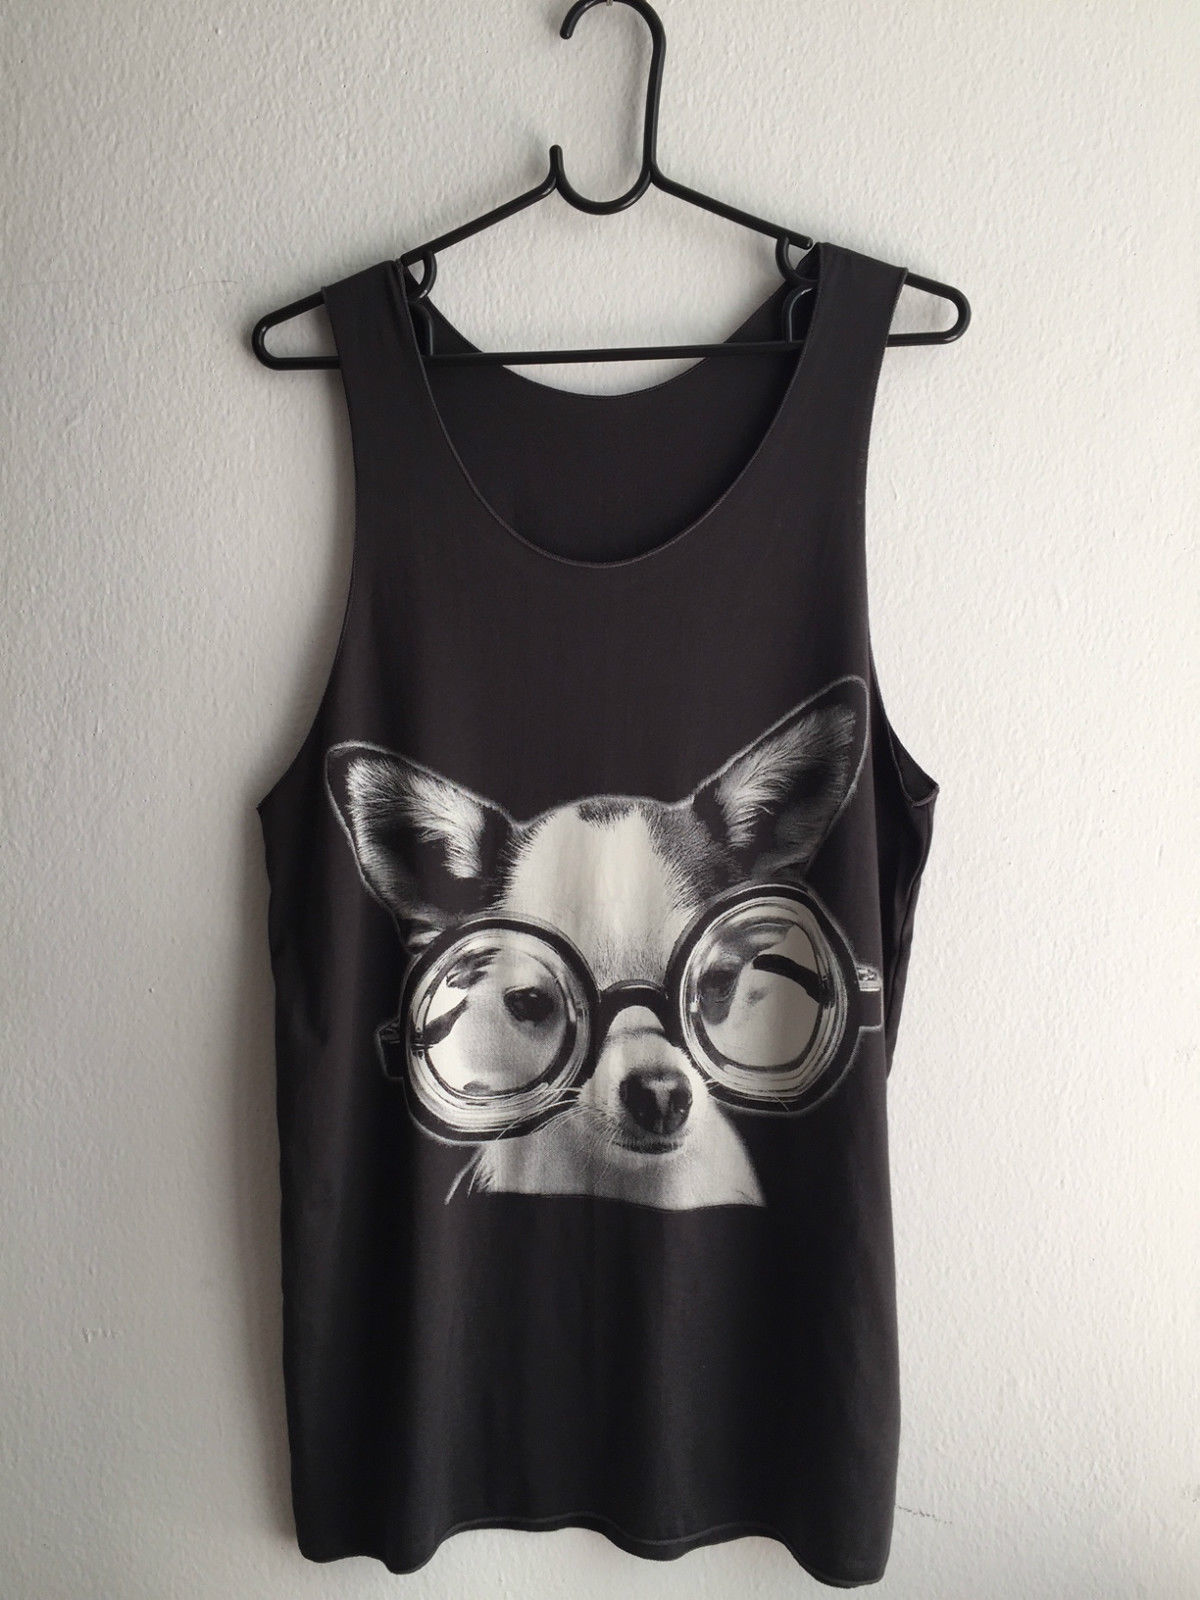 chihuahua_smallest_dog_cute_animal_pop_rock_indie_unisex_vest_tank_top_tanks_tops_and_camis_3.JPG